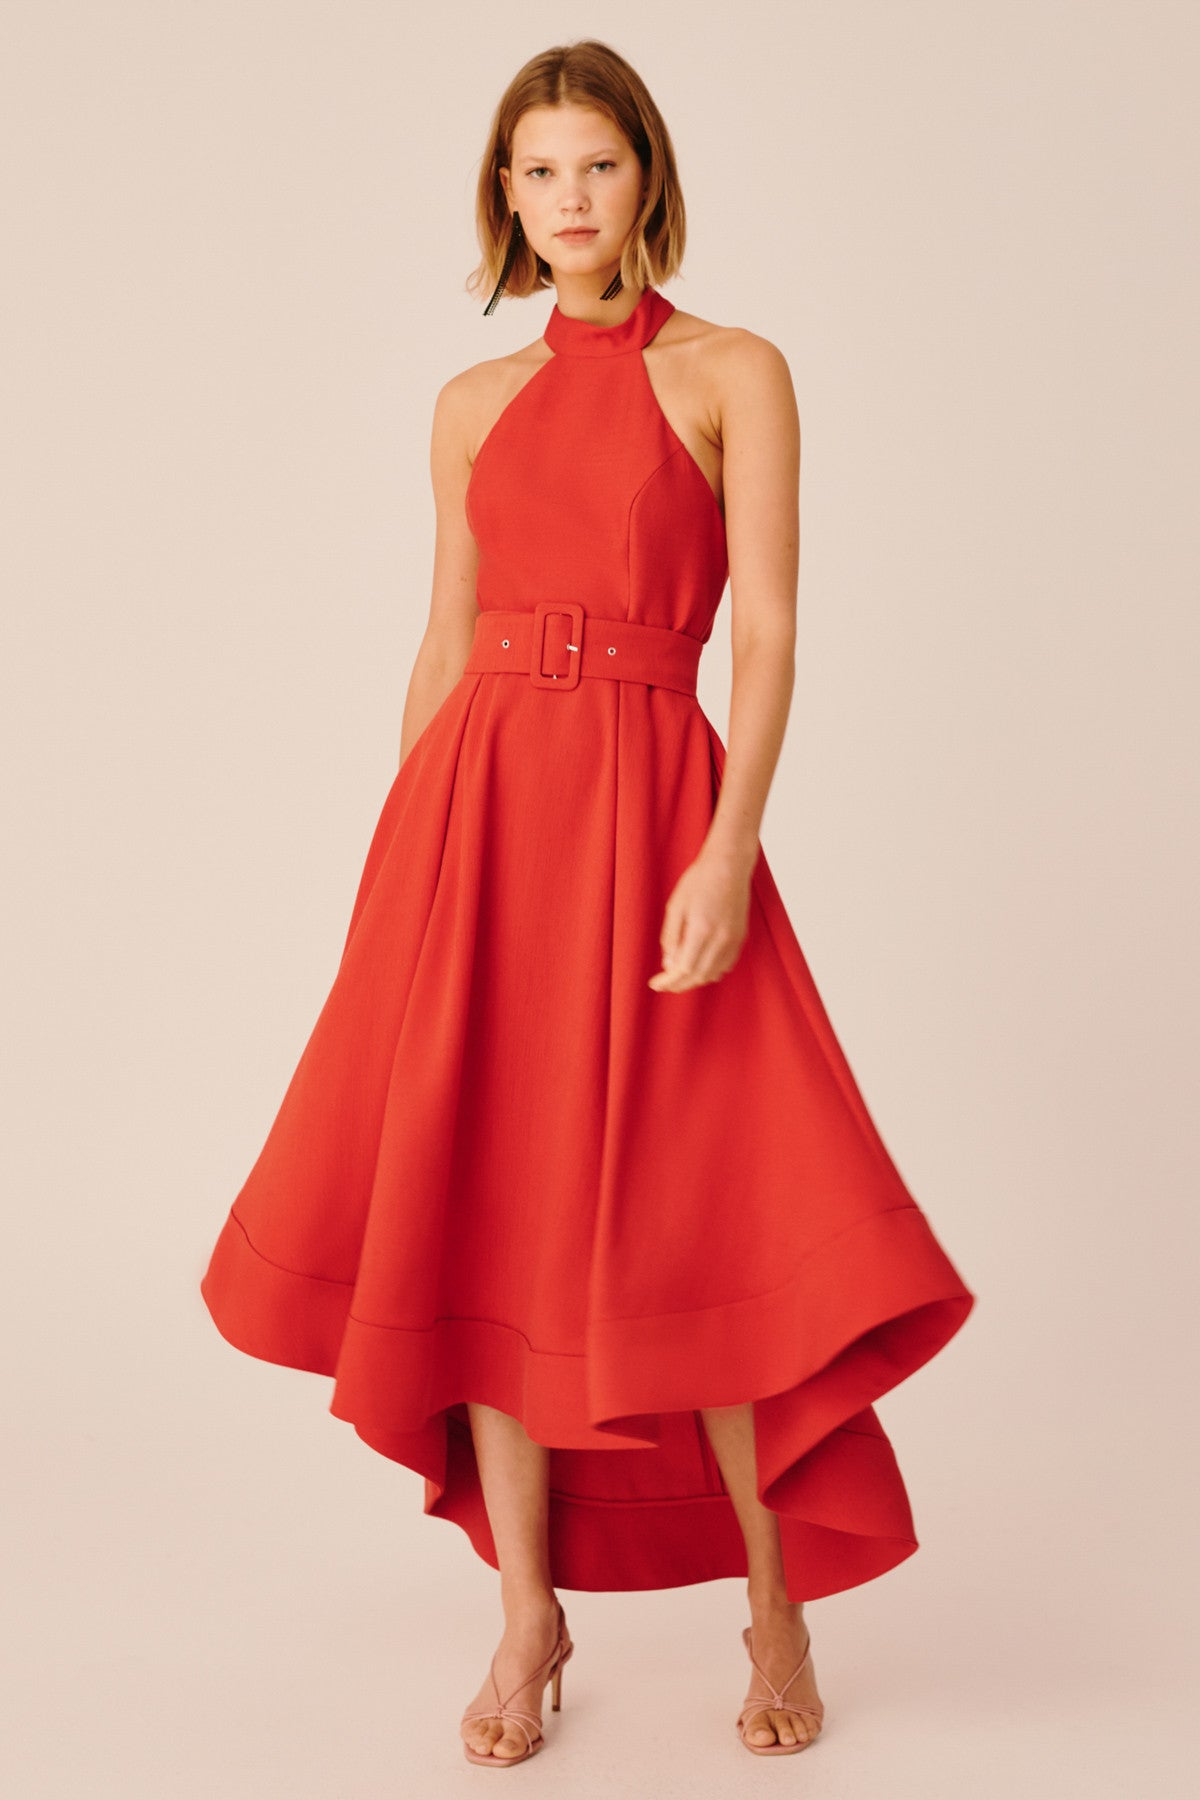 CONFIRMATIVE GOWN red